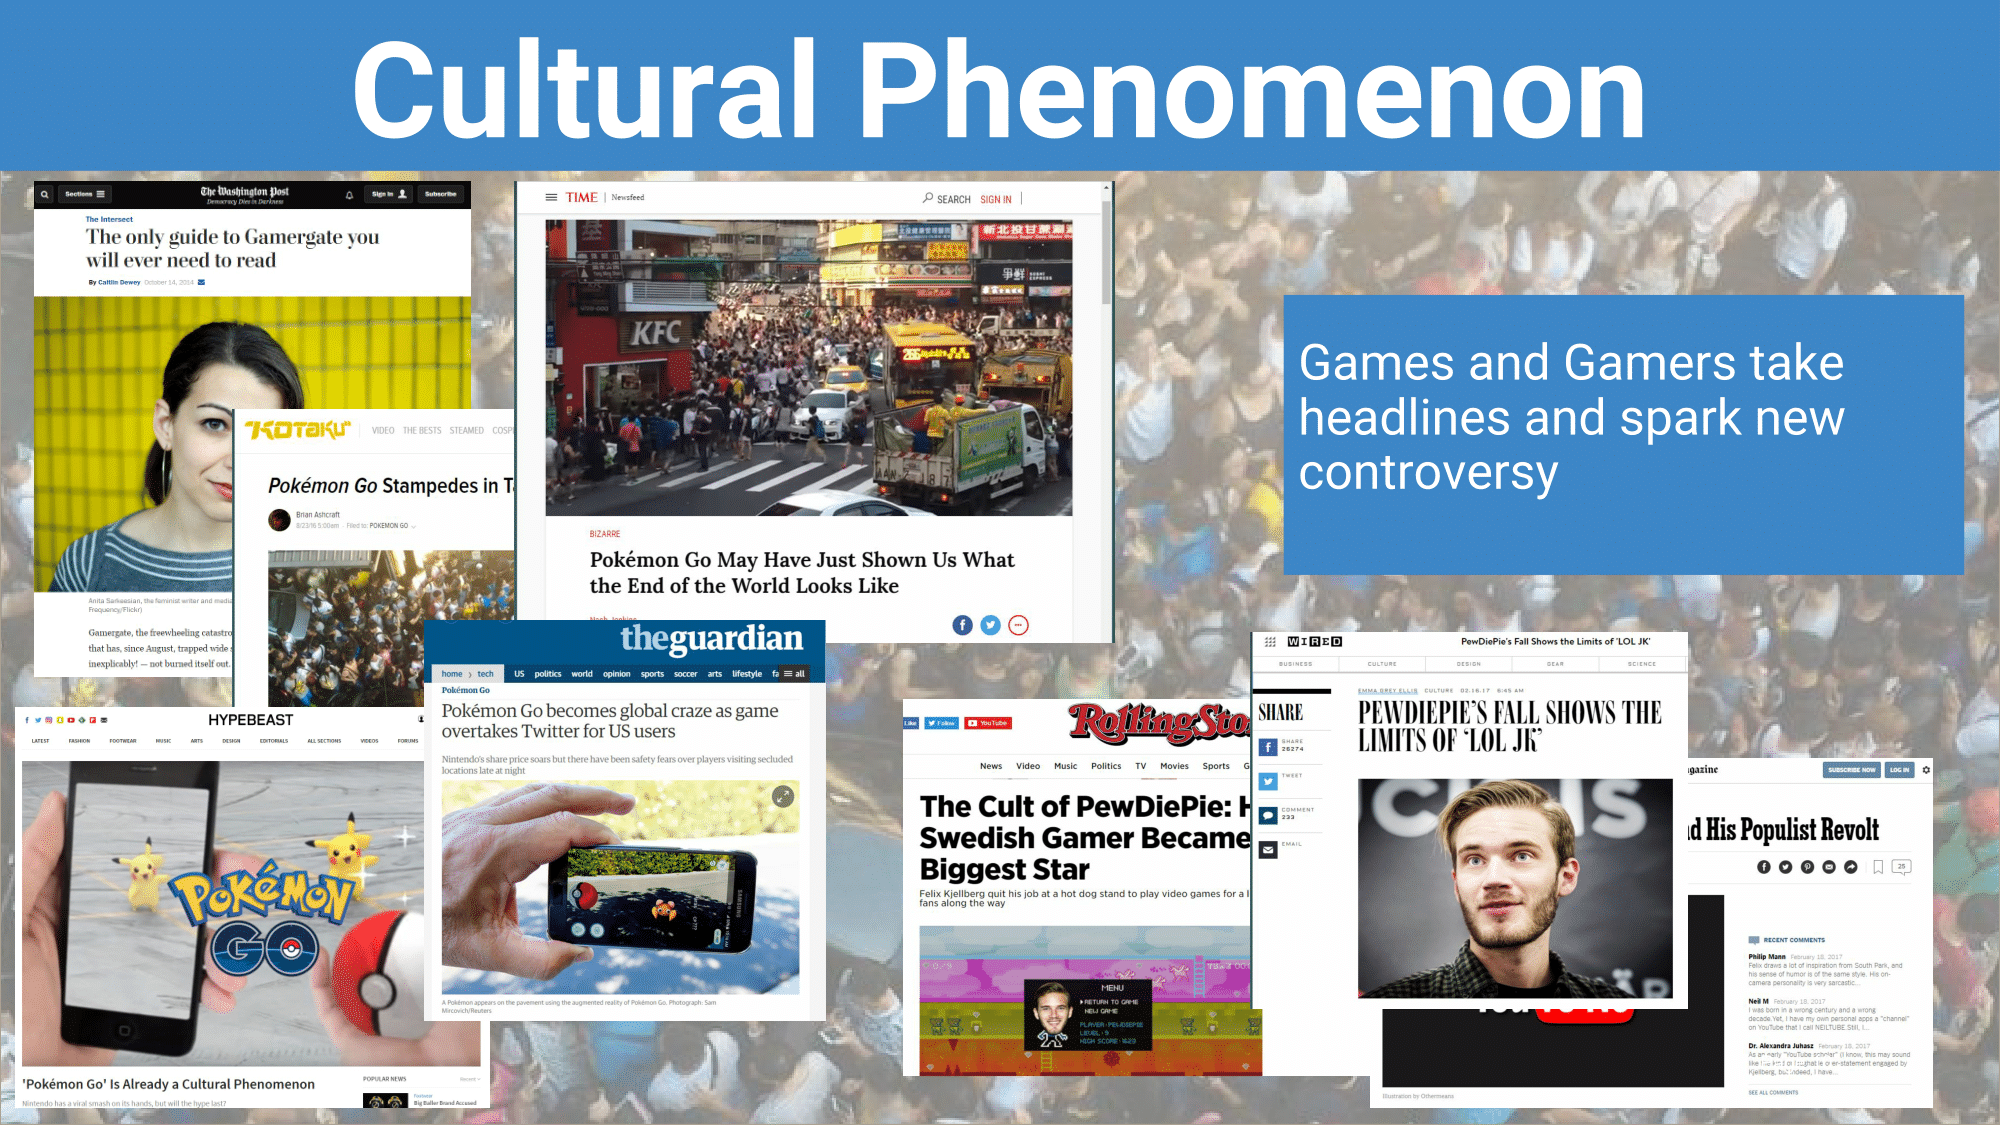 Whether it's a #hashtag taking over Twitter, watching everyone around you catch pokemon, or gamer icons becoming headline news gaming has become a cultural phenomena and is part of mainstream media.